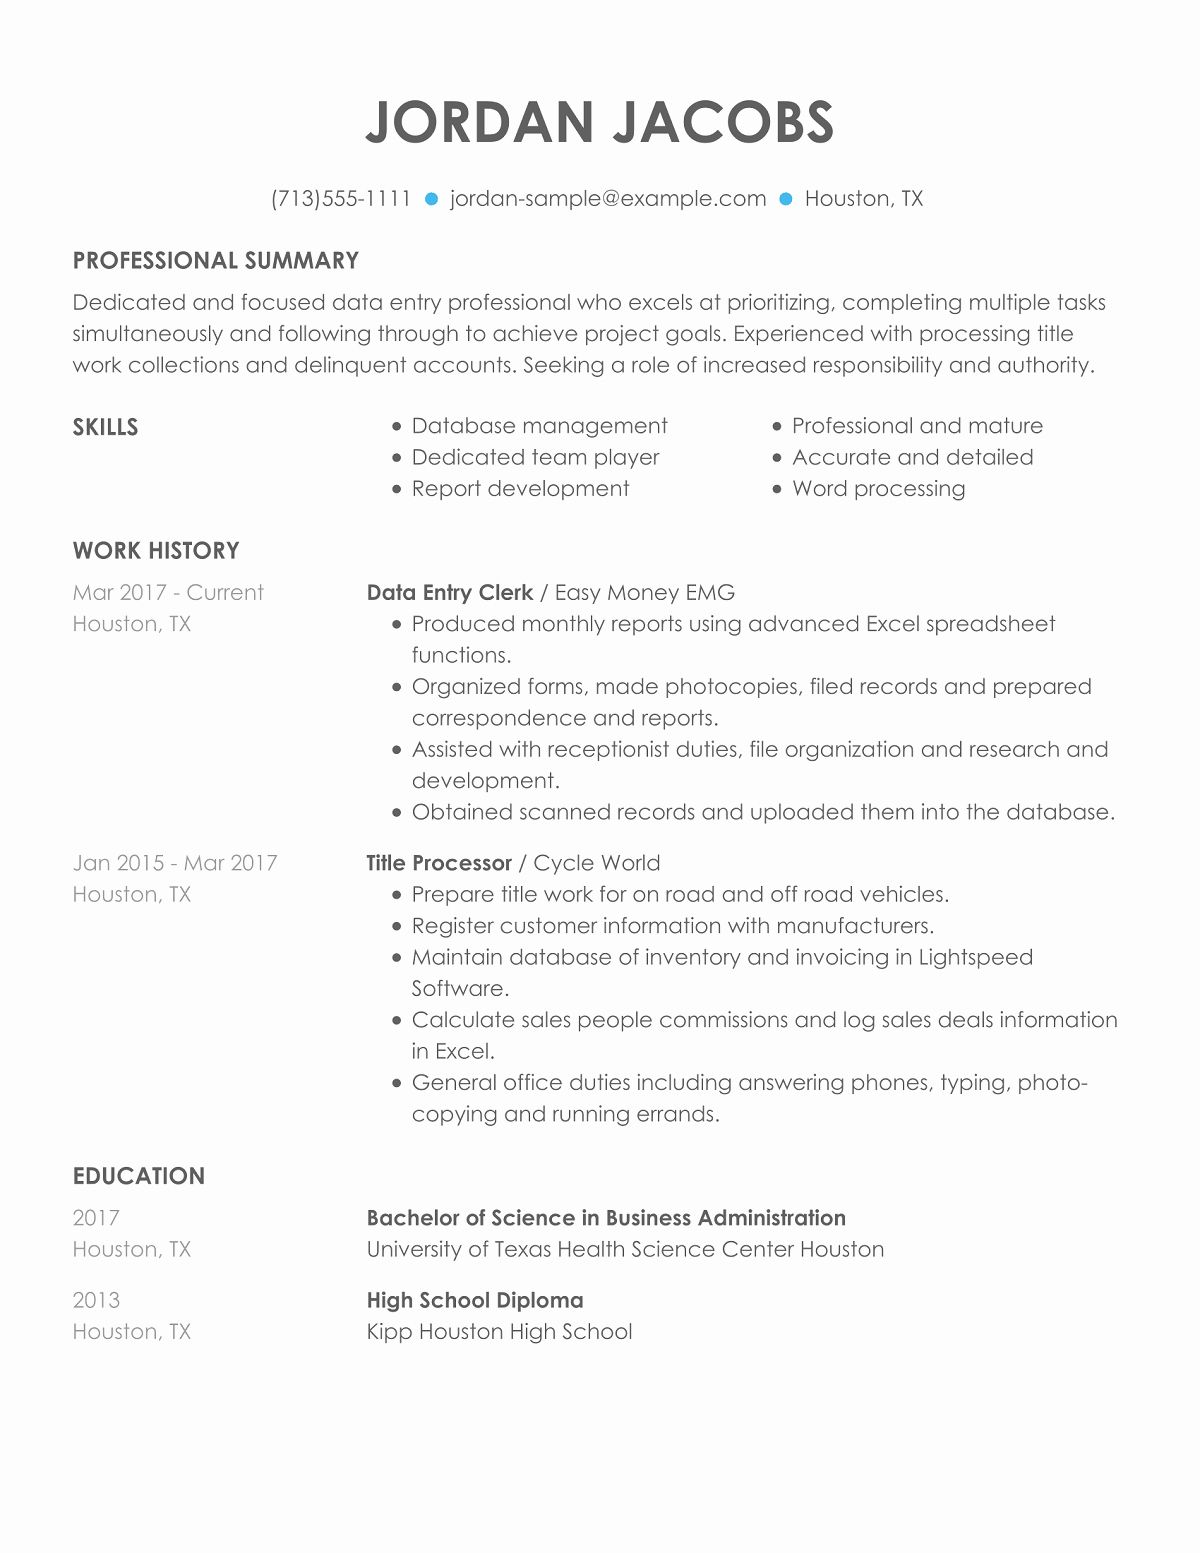 Research assistant Job Description Resume Best Of Data